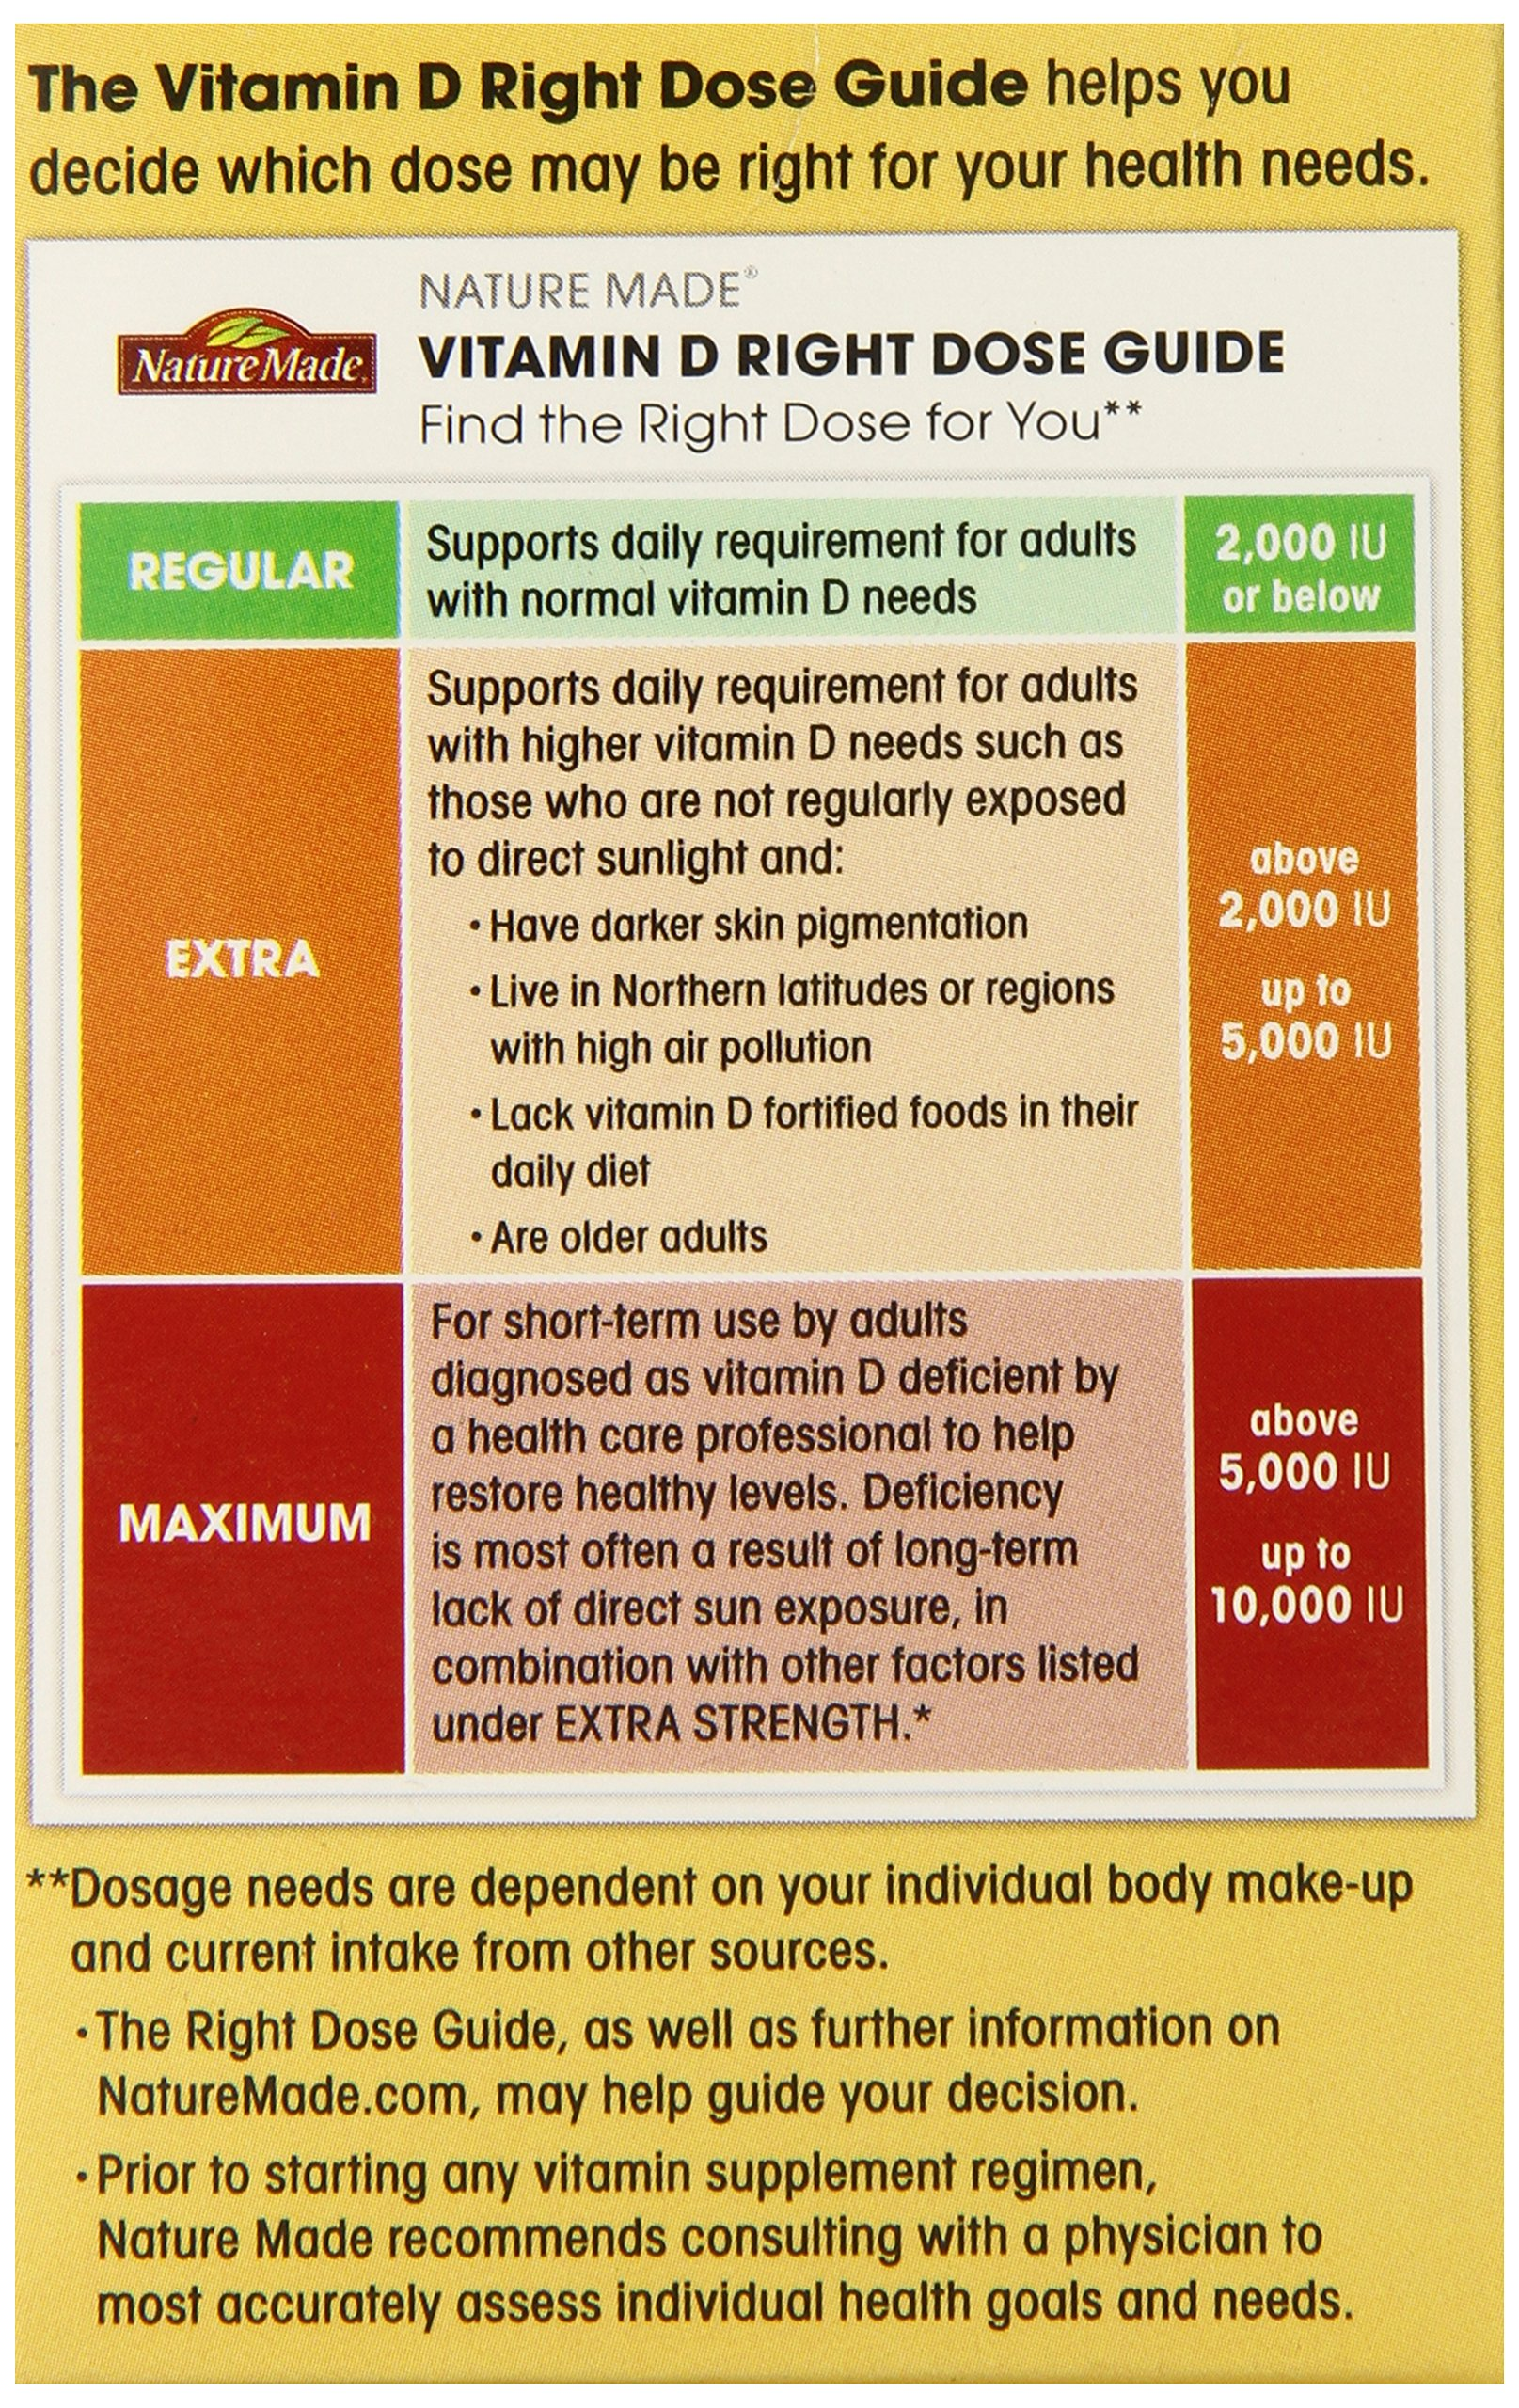 Nature Made Maximum Strength Vitamin D3 10,000 I.U. Soft gel, 60 Count by Nature Made (Image #5)